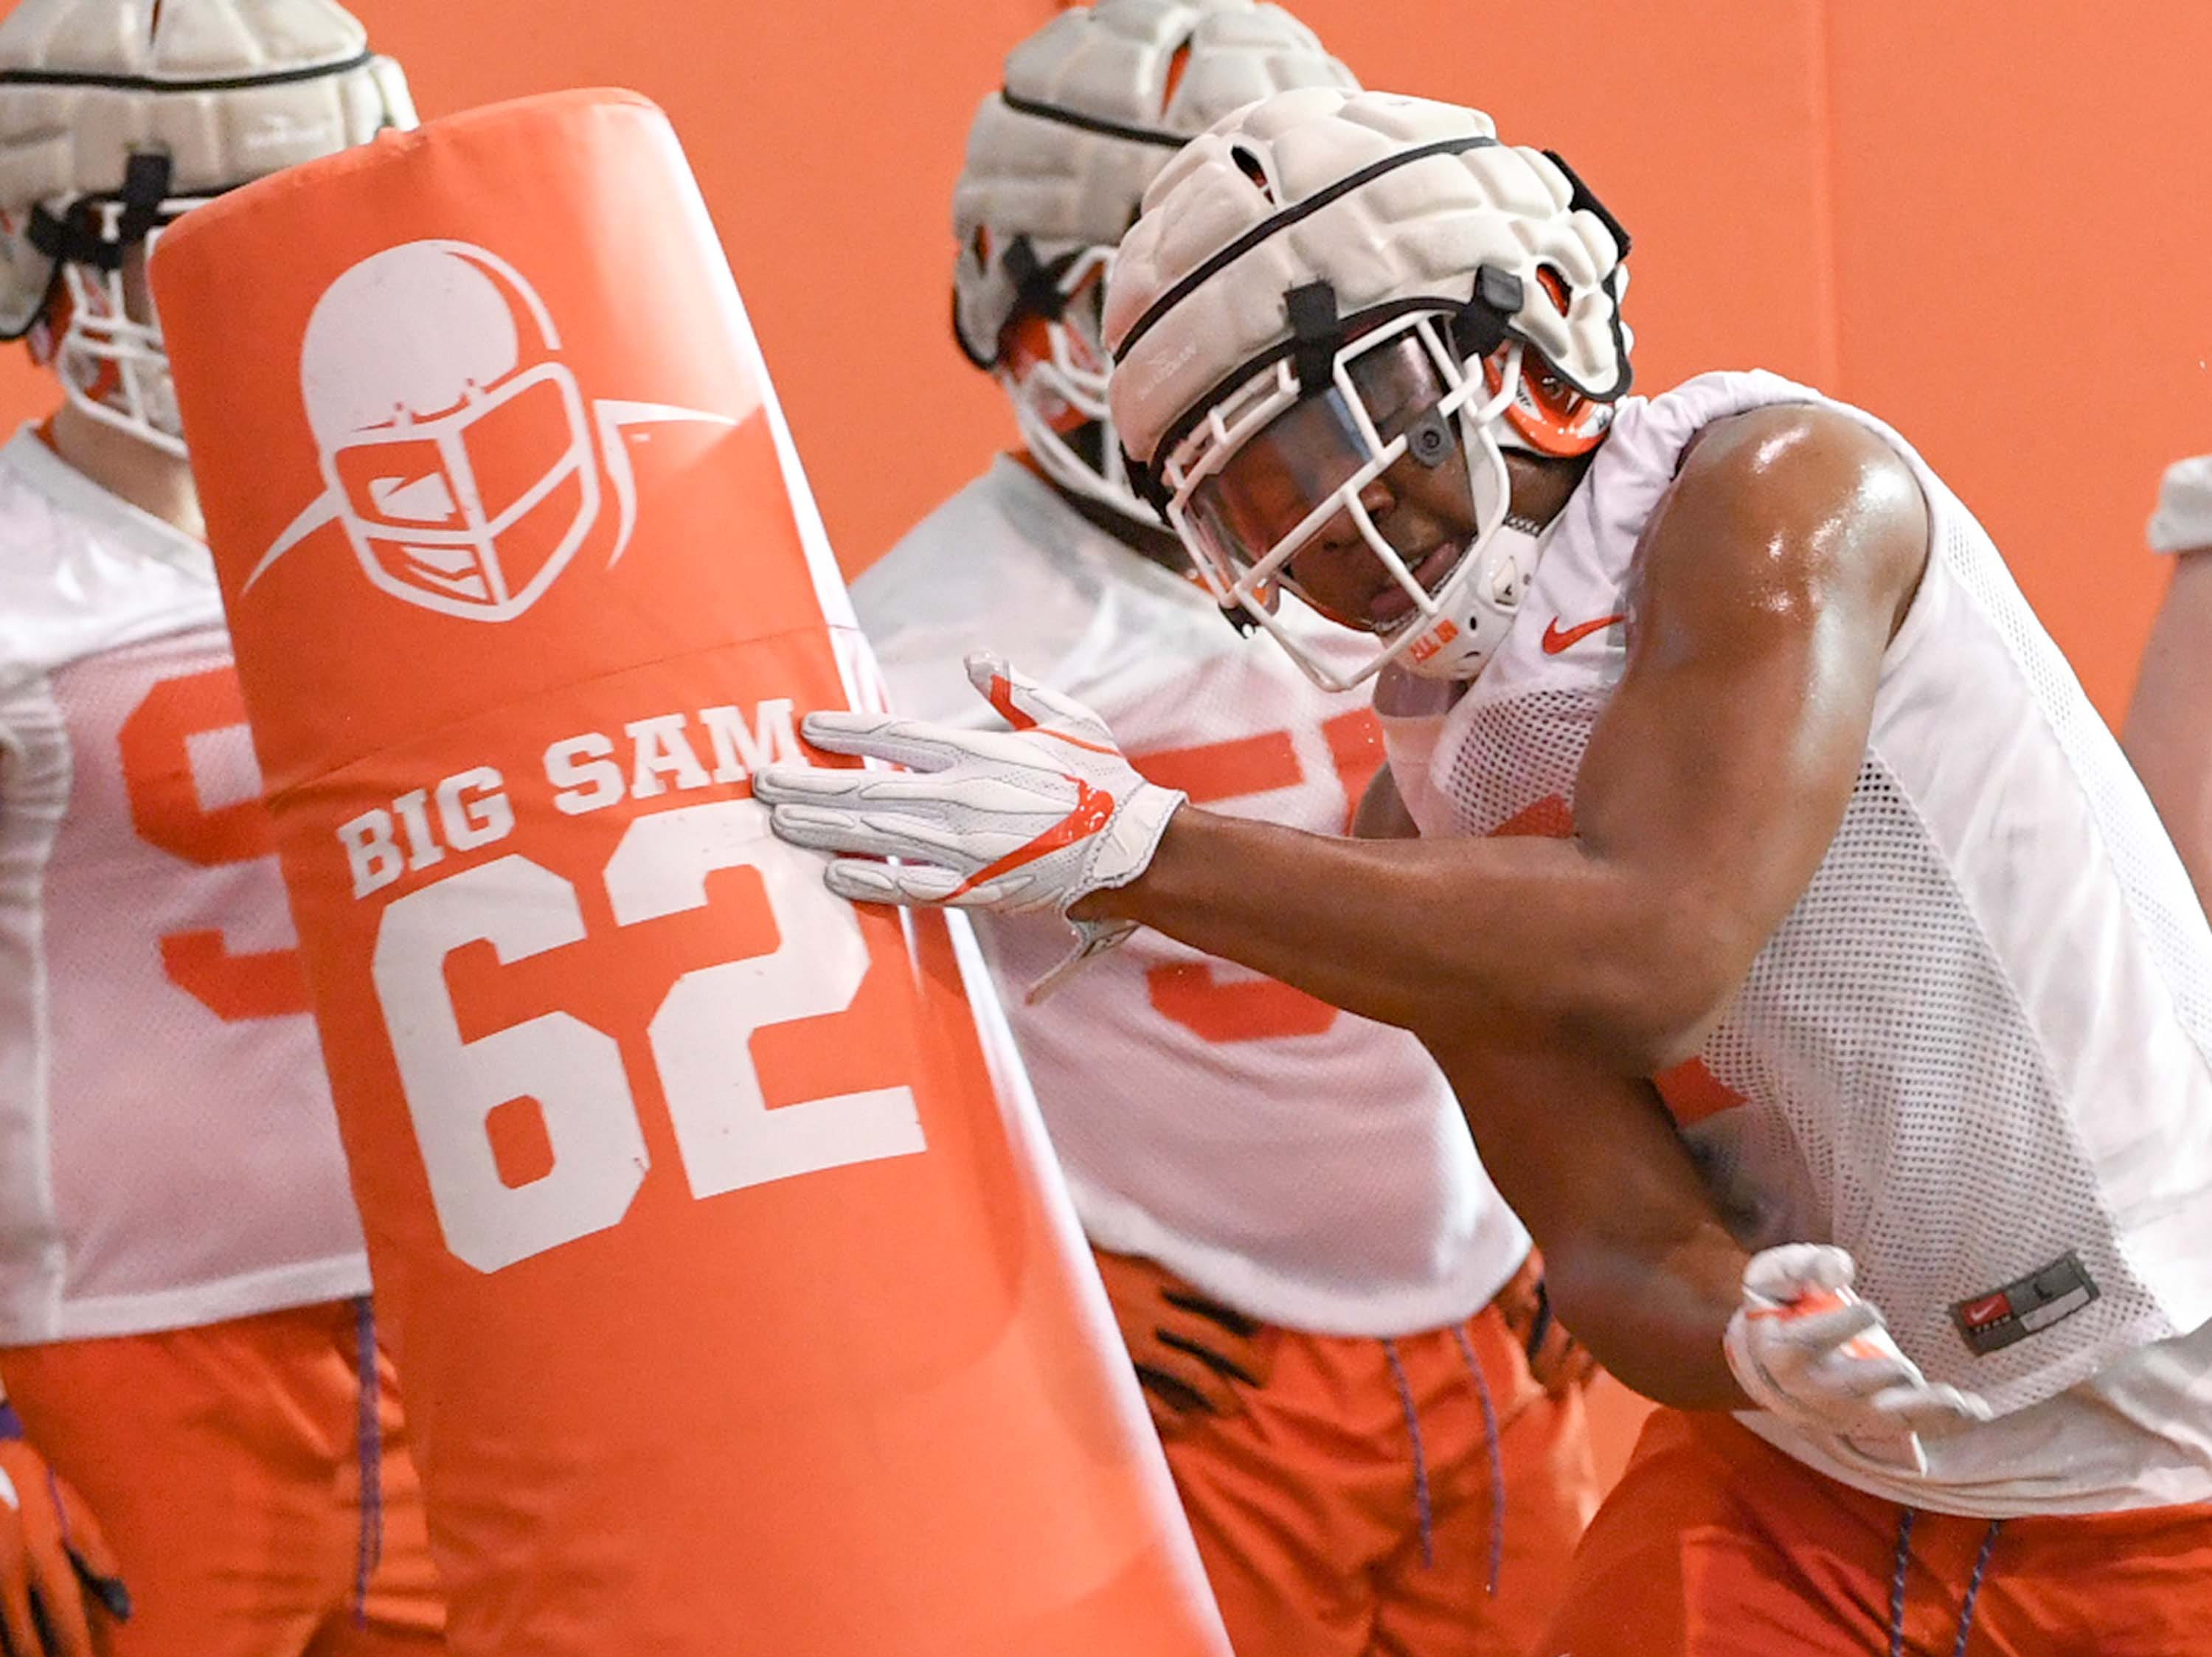 Clemson defensive end Justin Mascoll(7) hits a blocking dummy during the first practice at the Clemson Indoor Practice Facility in Clemson Wednesday, February 27, 2019.